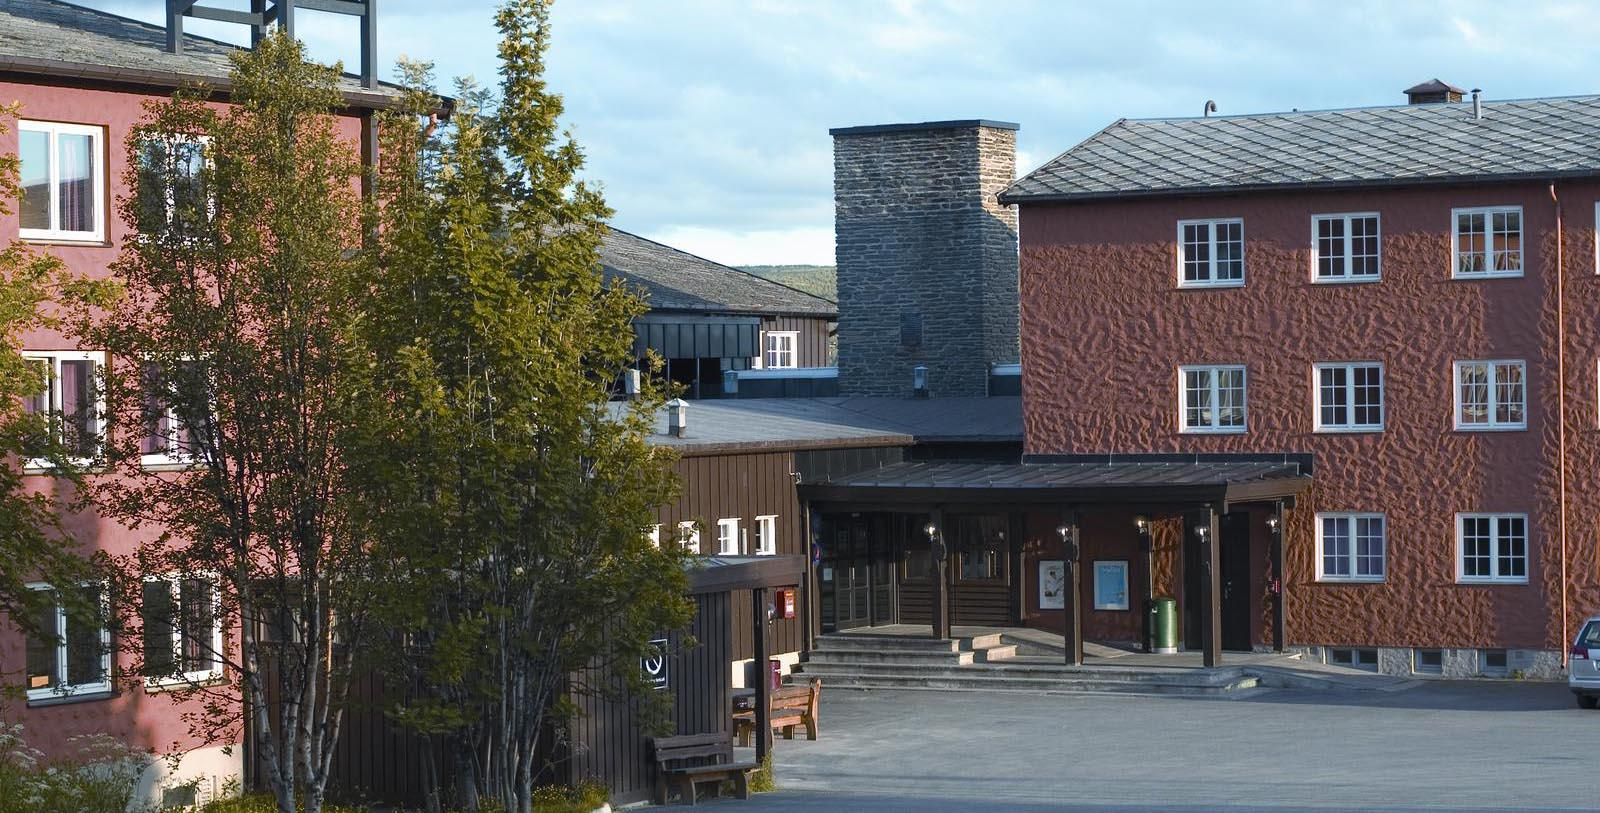 Image of Hotel Exterior Roros Hotel, 1951, Member of Historic Hotels Worldwide, in Roros, Norway, Special Offers, Discounted Rates, Families, Romantic Escape, Honeymoons, Anniversaries, Reunions